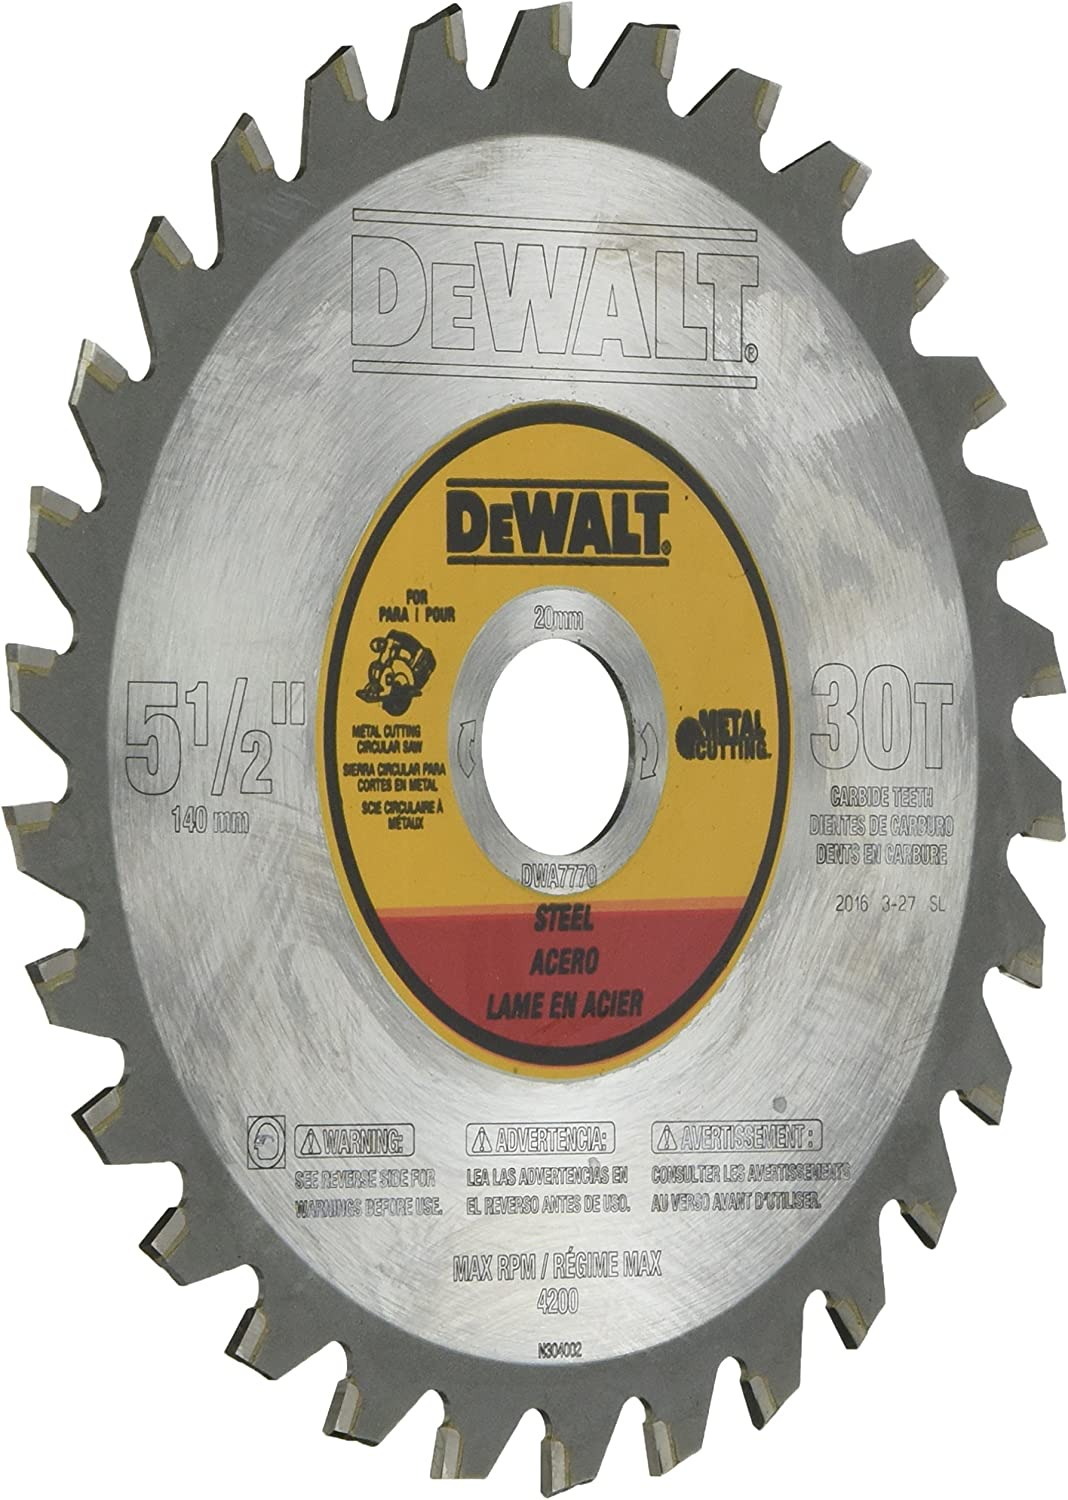 Details about  /New Pack of 5 Diamond Saw Works Sterling  82022 Jig Saw Blades